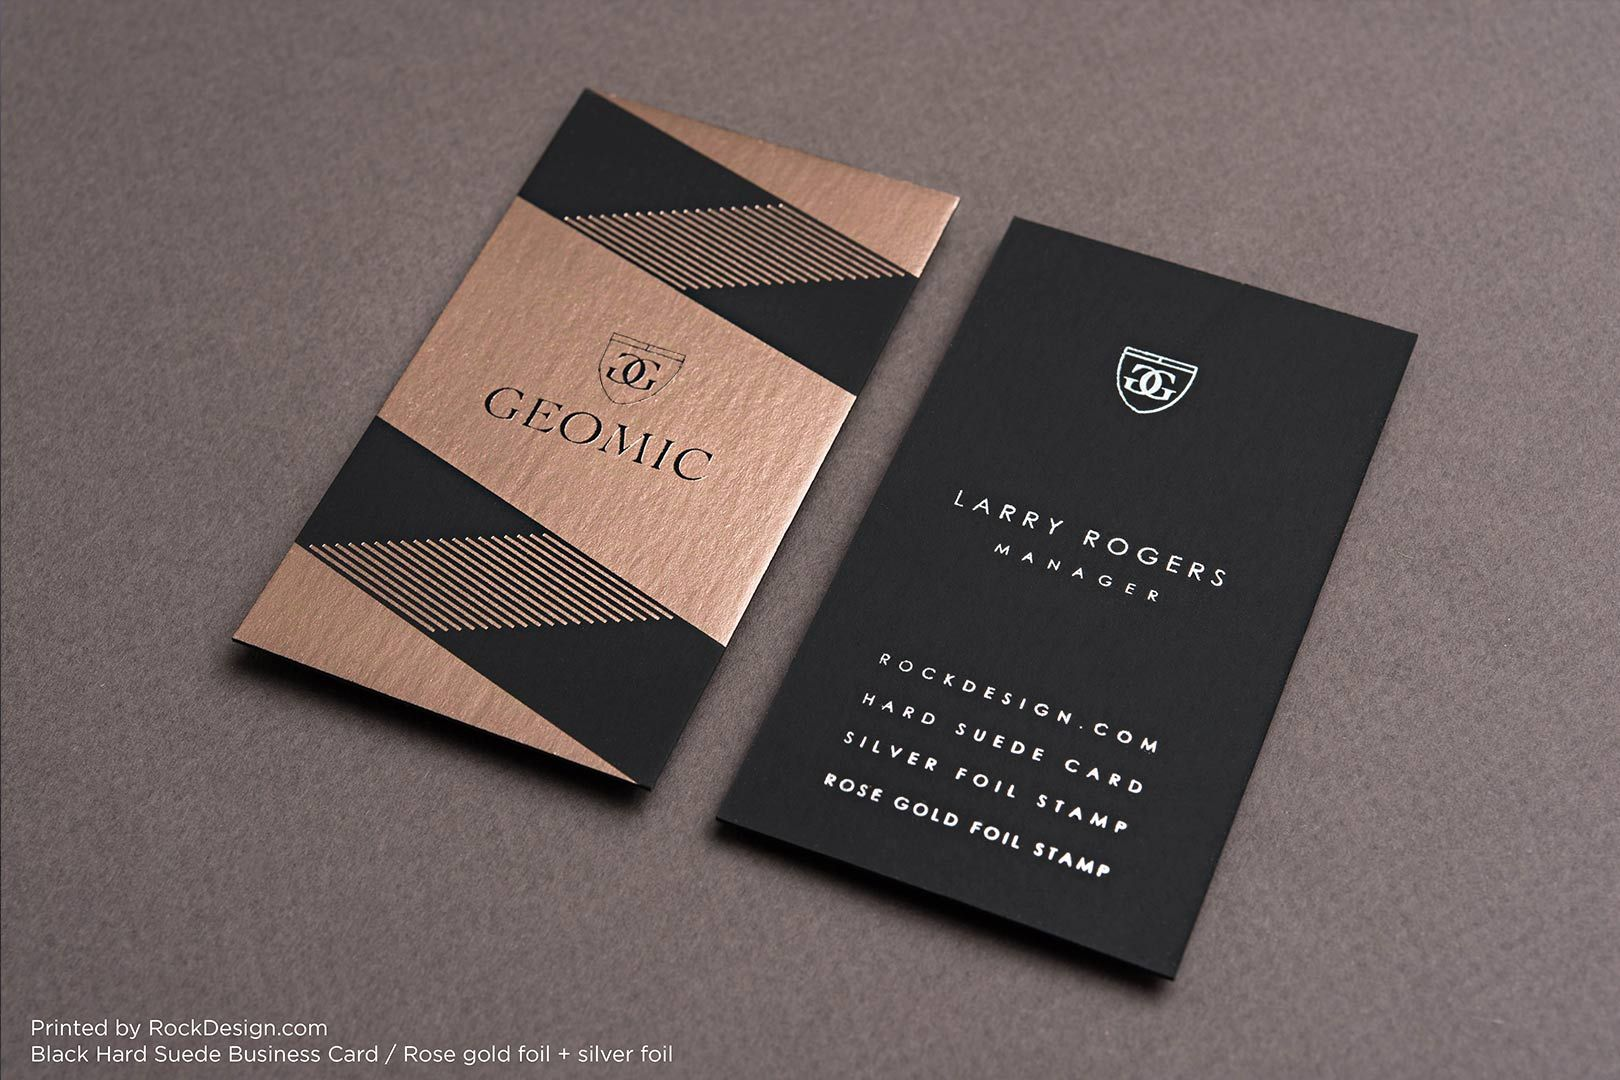 Hard Suede Business Cards | RockDesign Luxury Business Card Printing ...